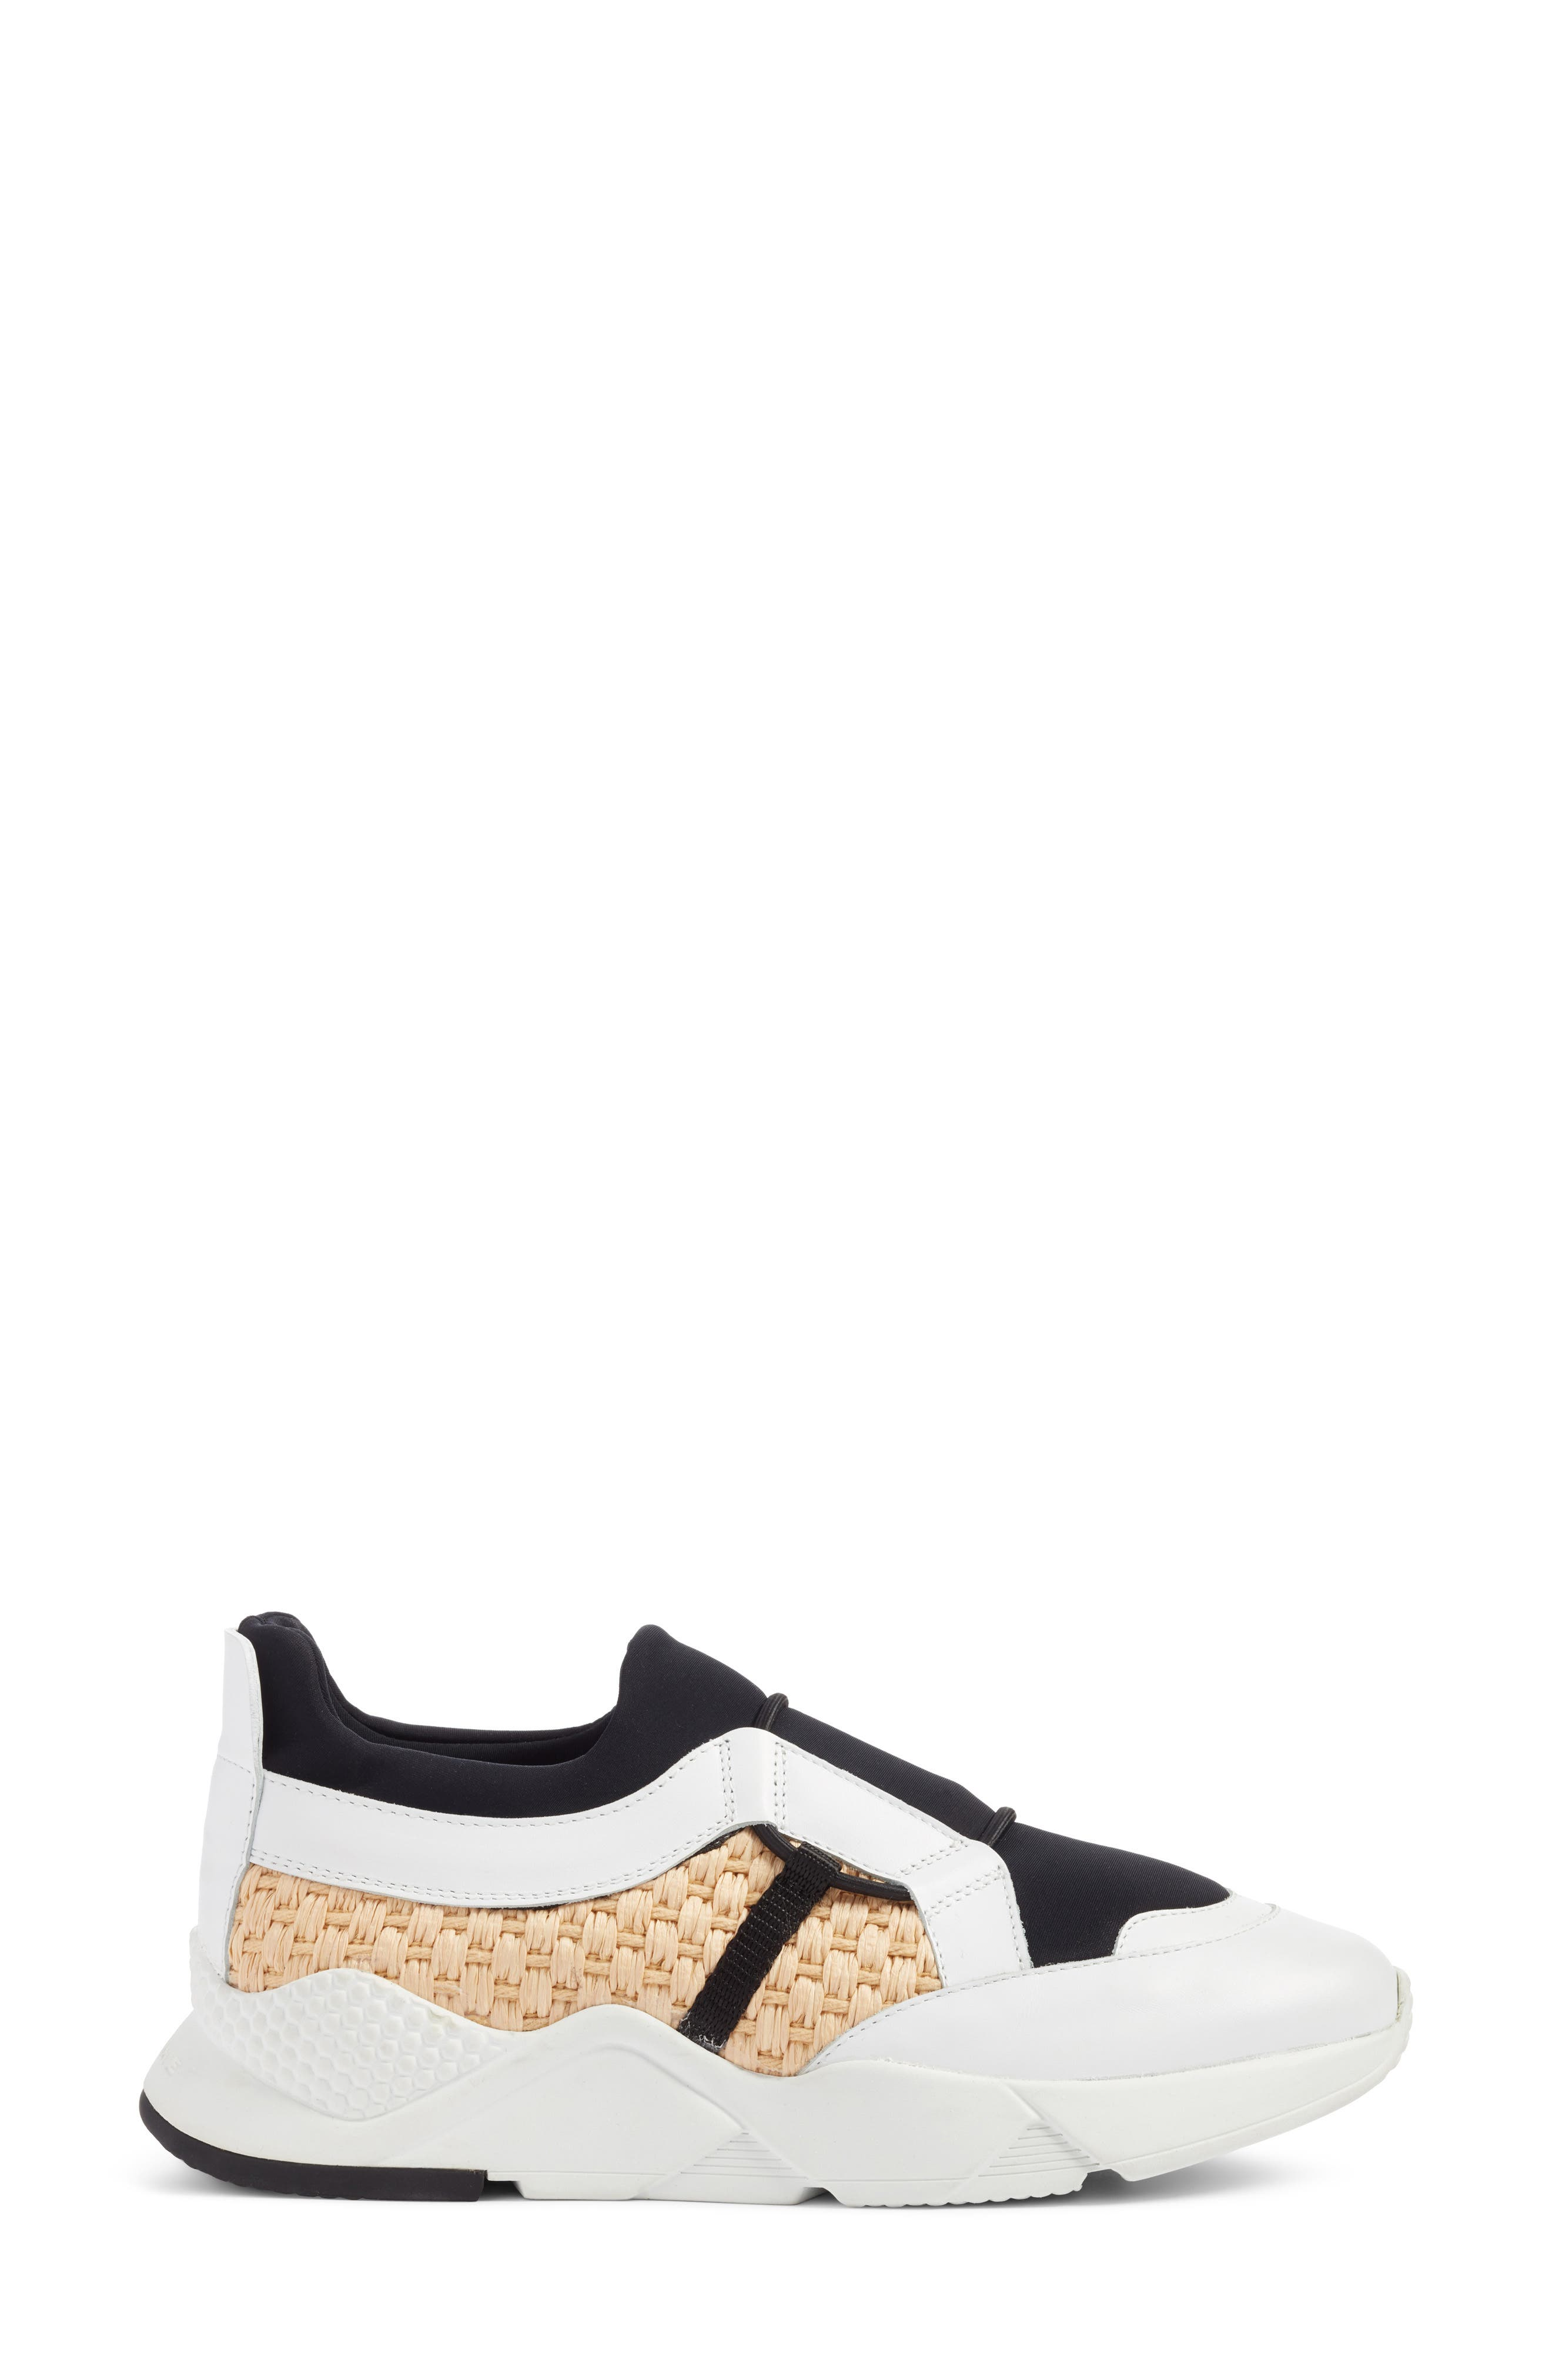 Alternate Image 3  - Robert Clergerie Salvy Woven Sneaker (Women)